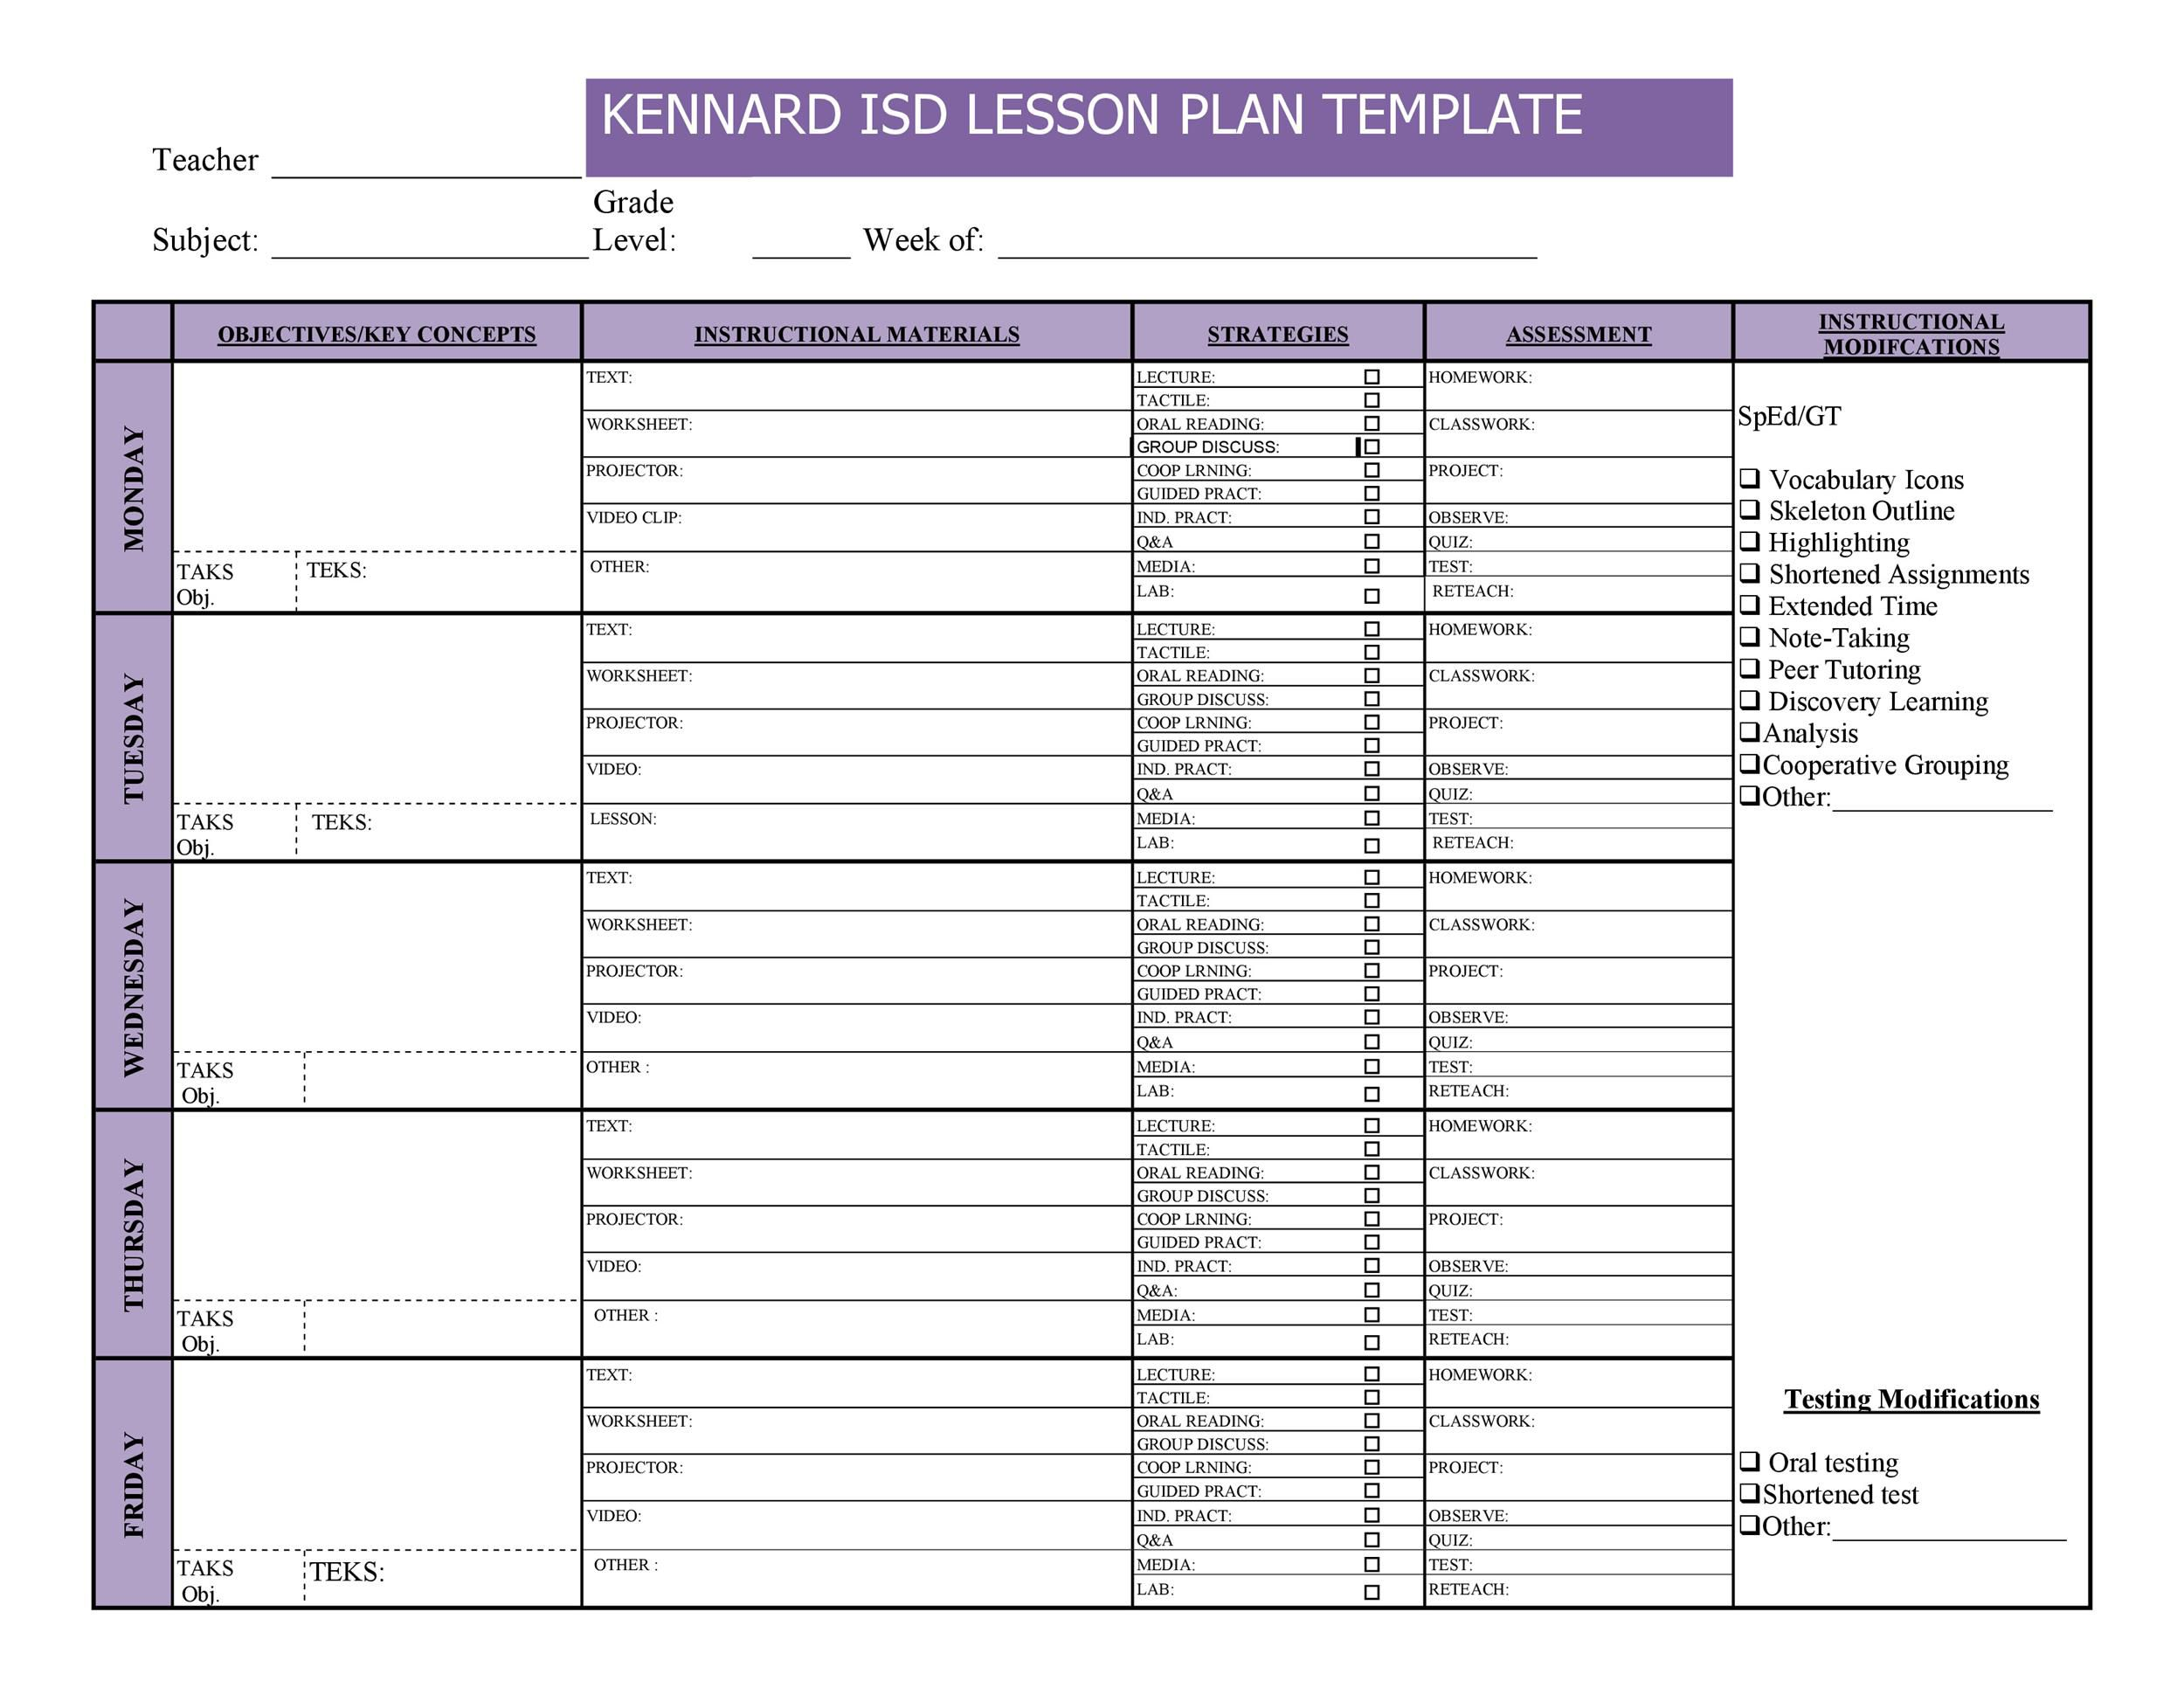 008 Archaicawful Editable Lesson Plan Template Highest Clarity  Templates For Preschool Word FreeFull